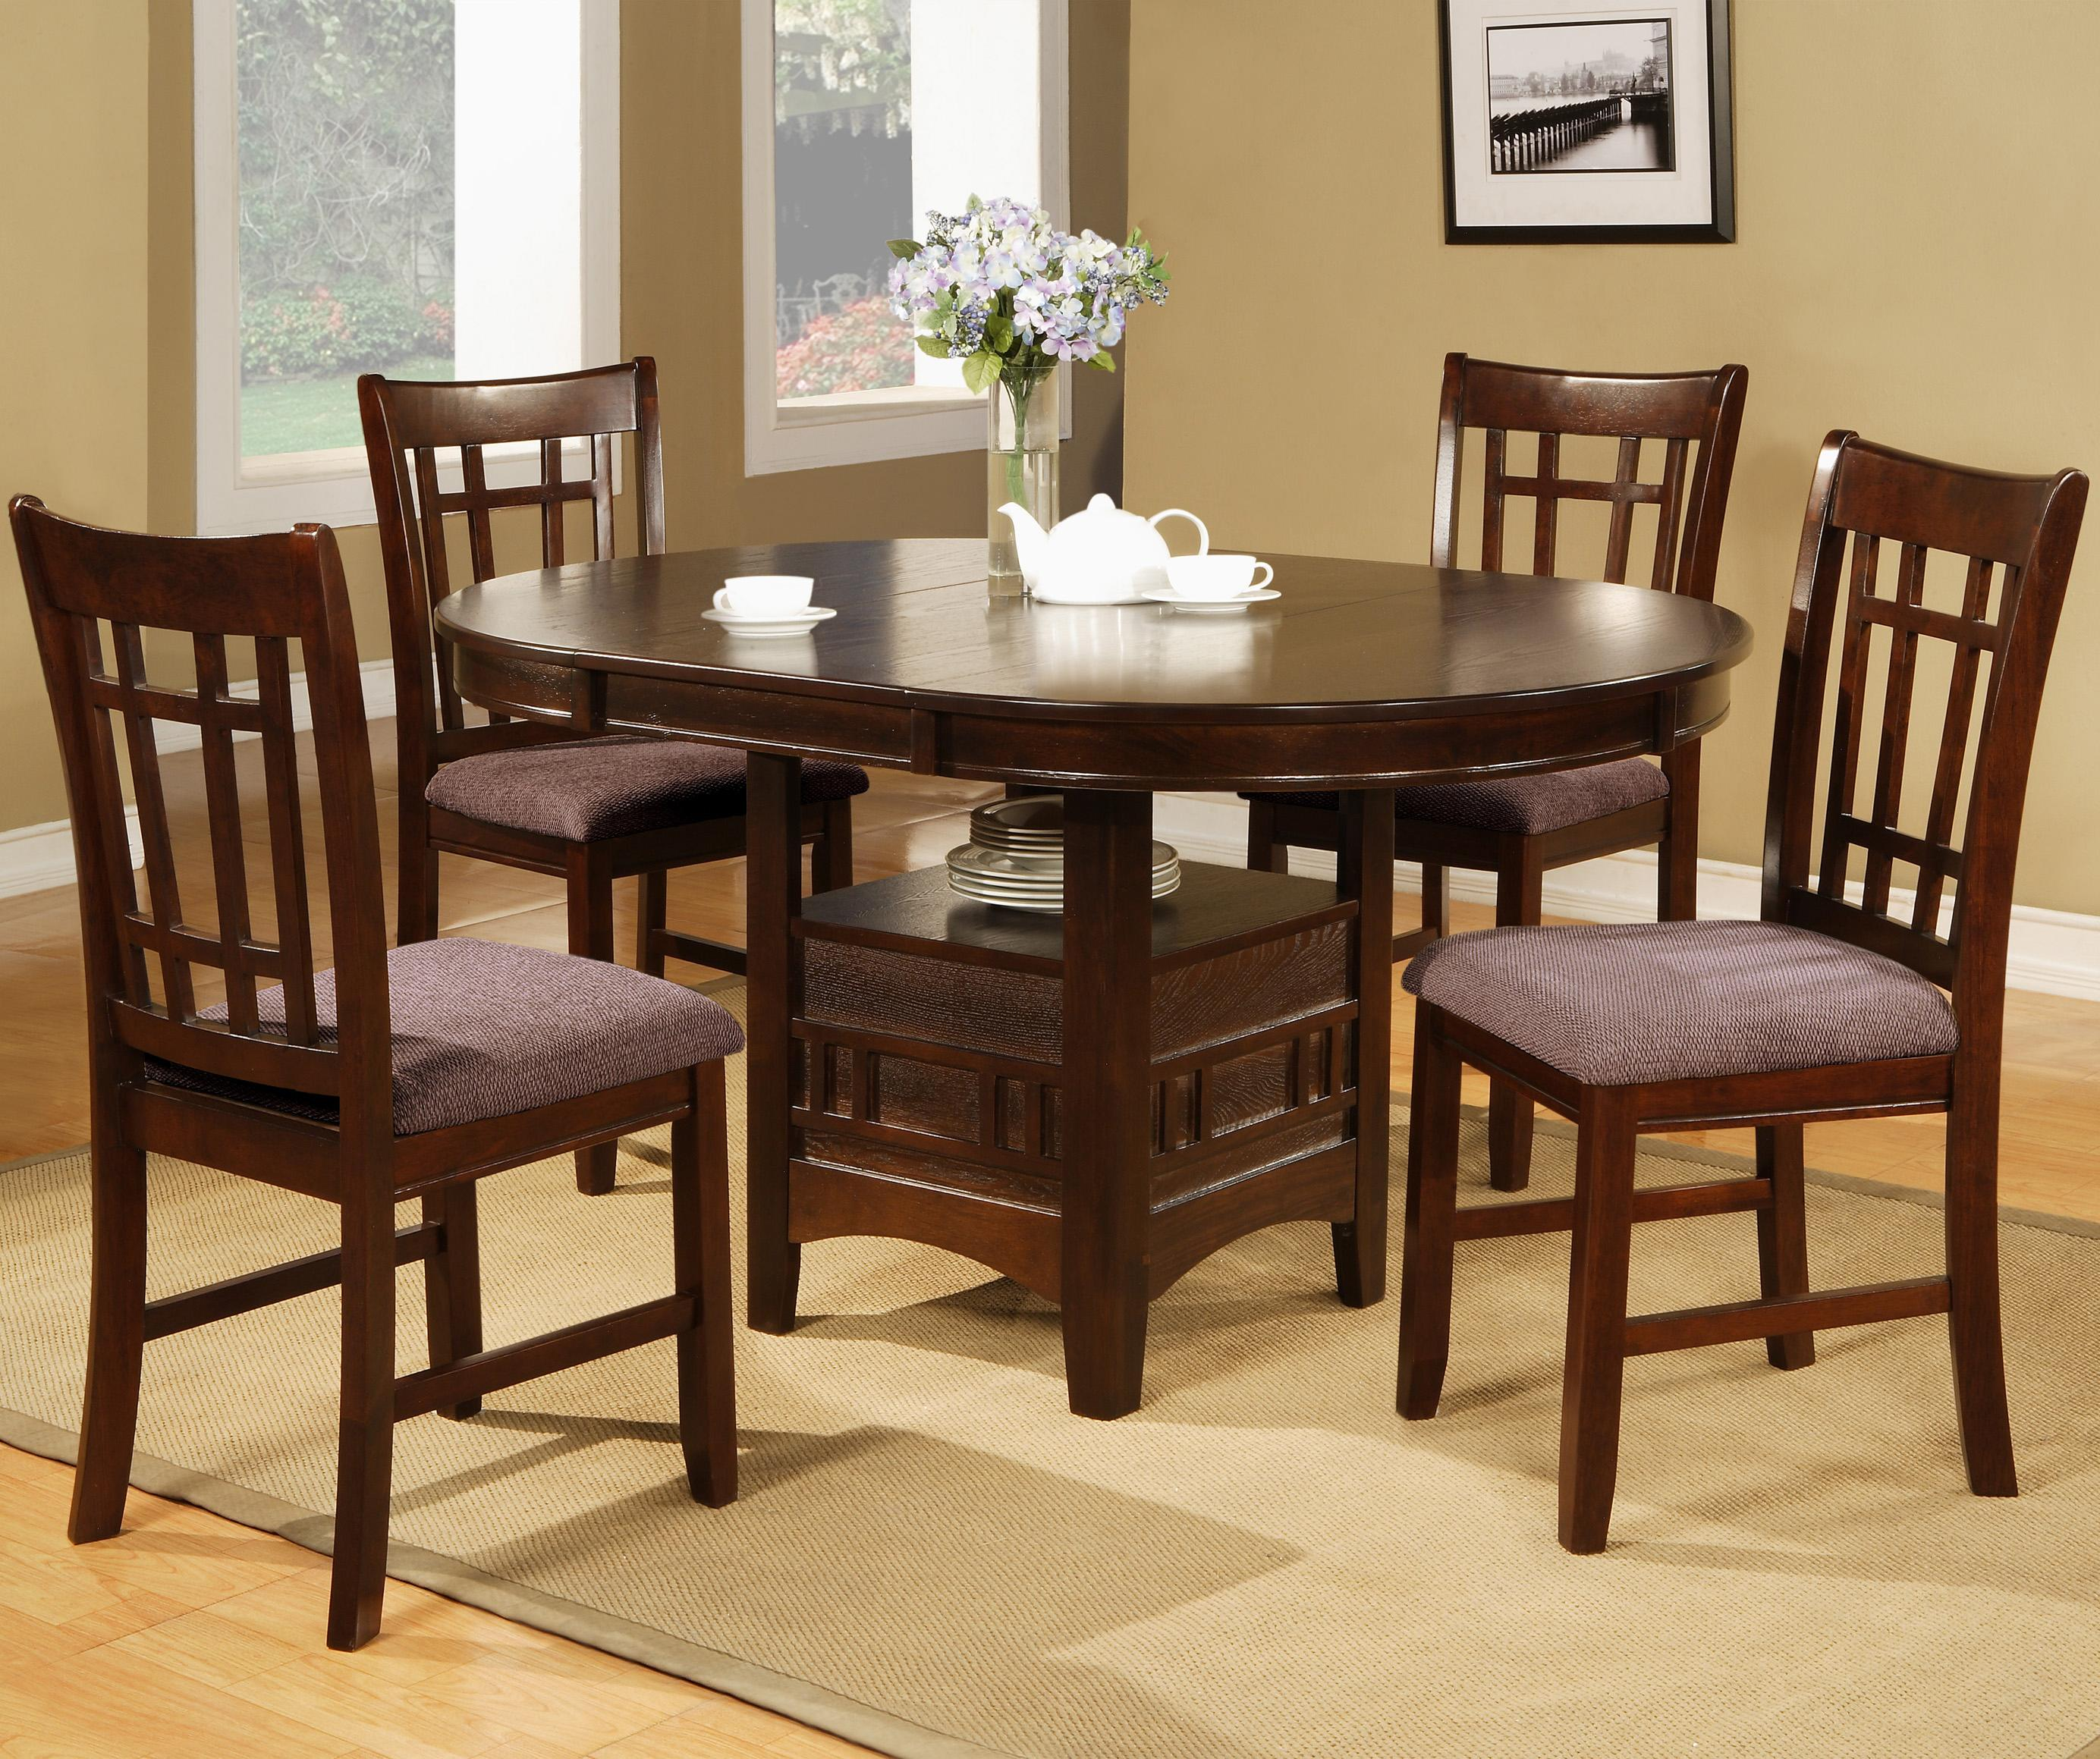 Crown mark empire 5 piece dining table with 18 leaf for Furniture markup